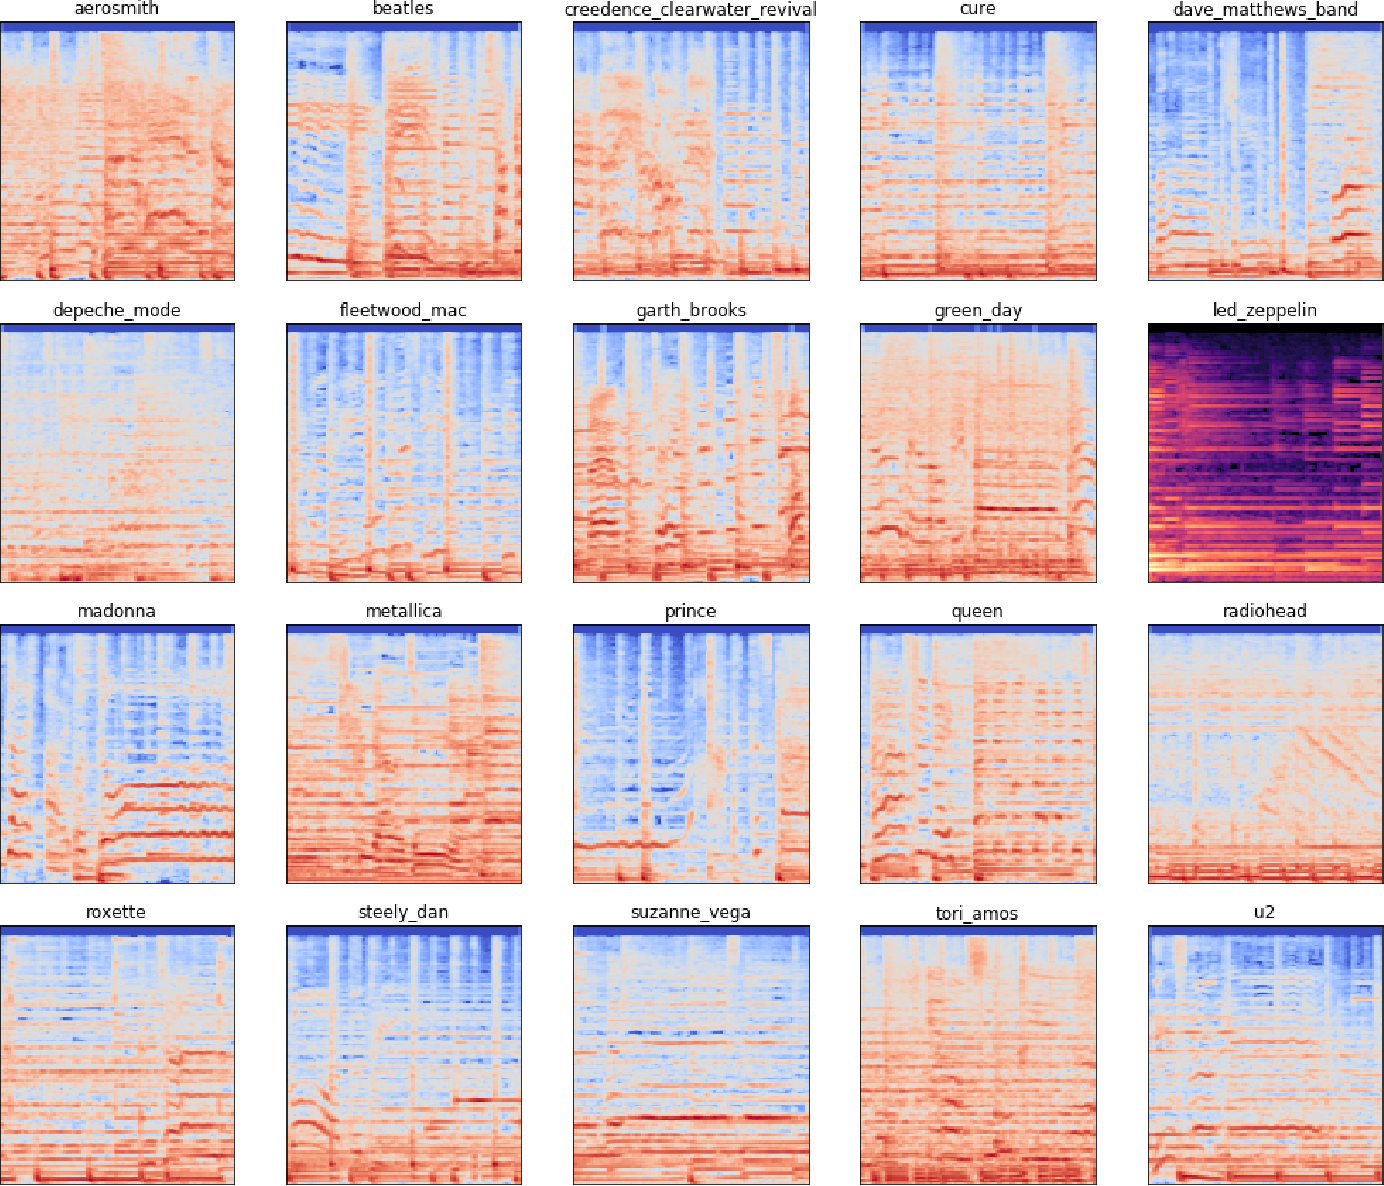 Figure 1 for Music Artist Classification with Convolutional Recurrent Neural Networks